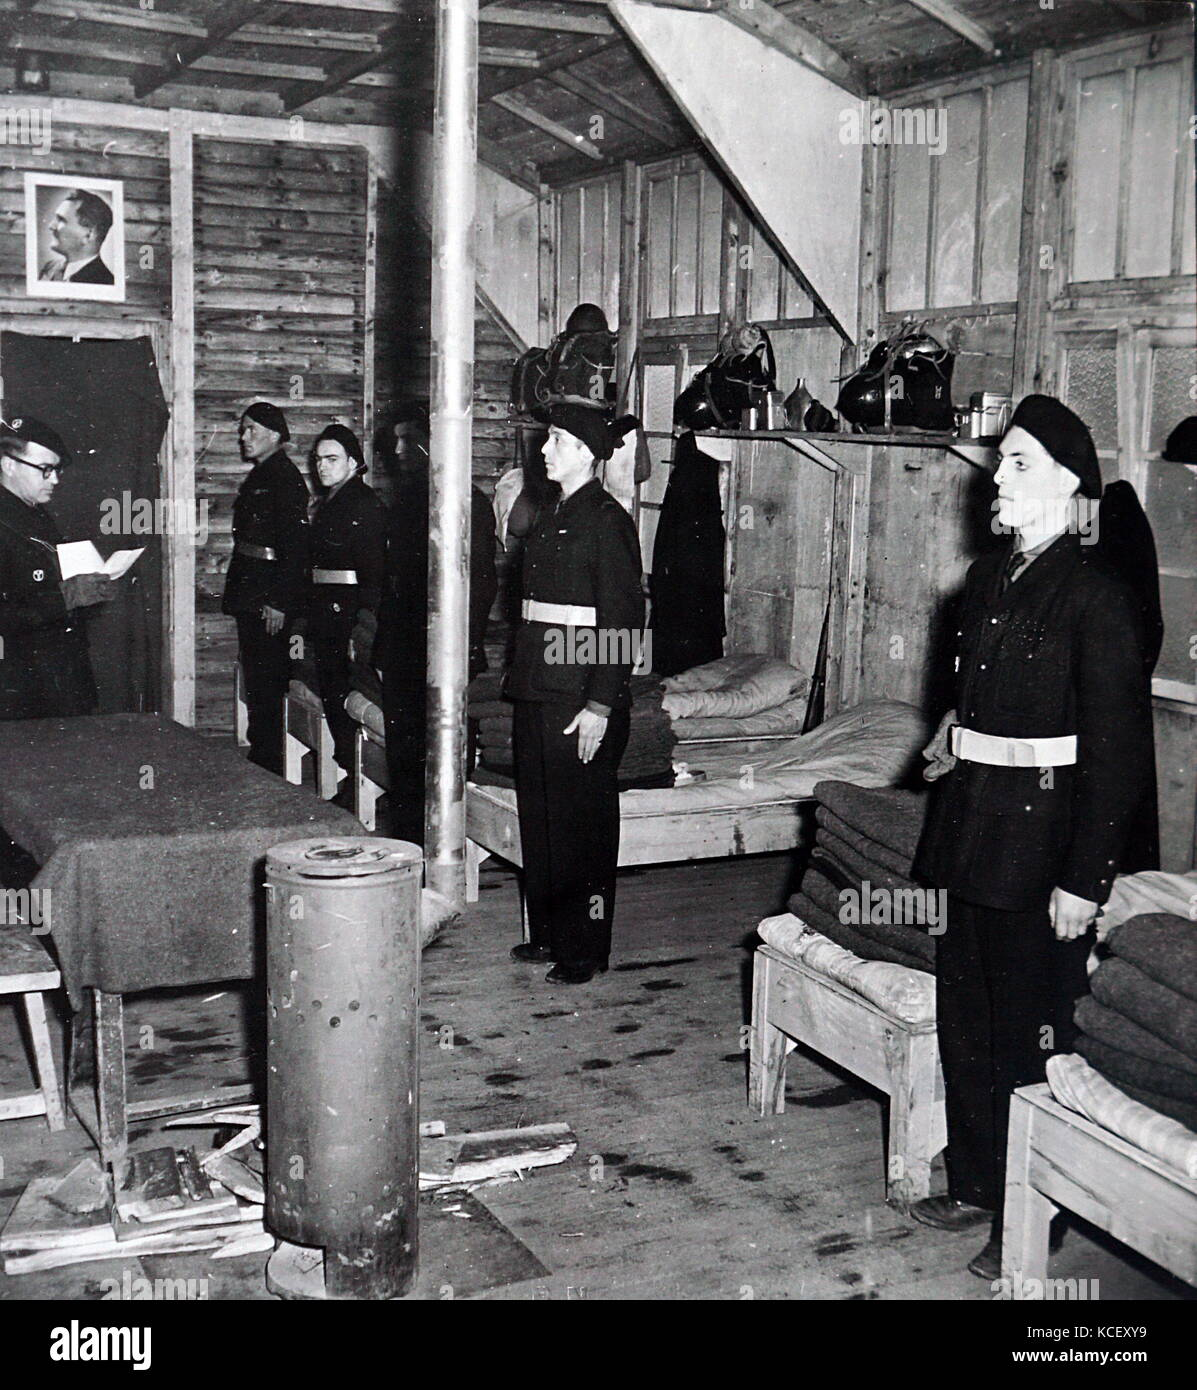 Photograph of French soldiers praying in their barracks in occupied France during World War Two. Dated 20th Century - Stock Image